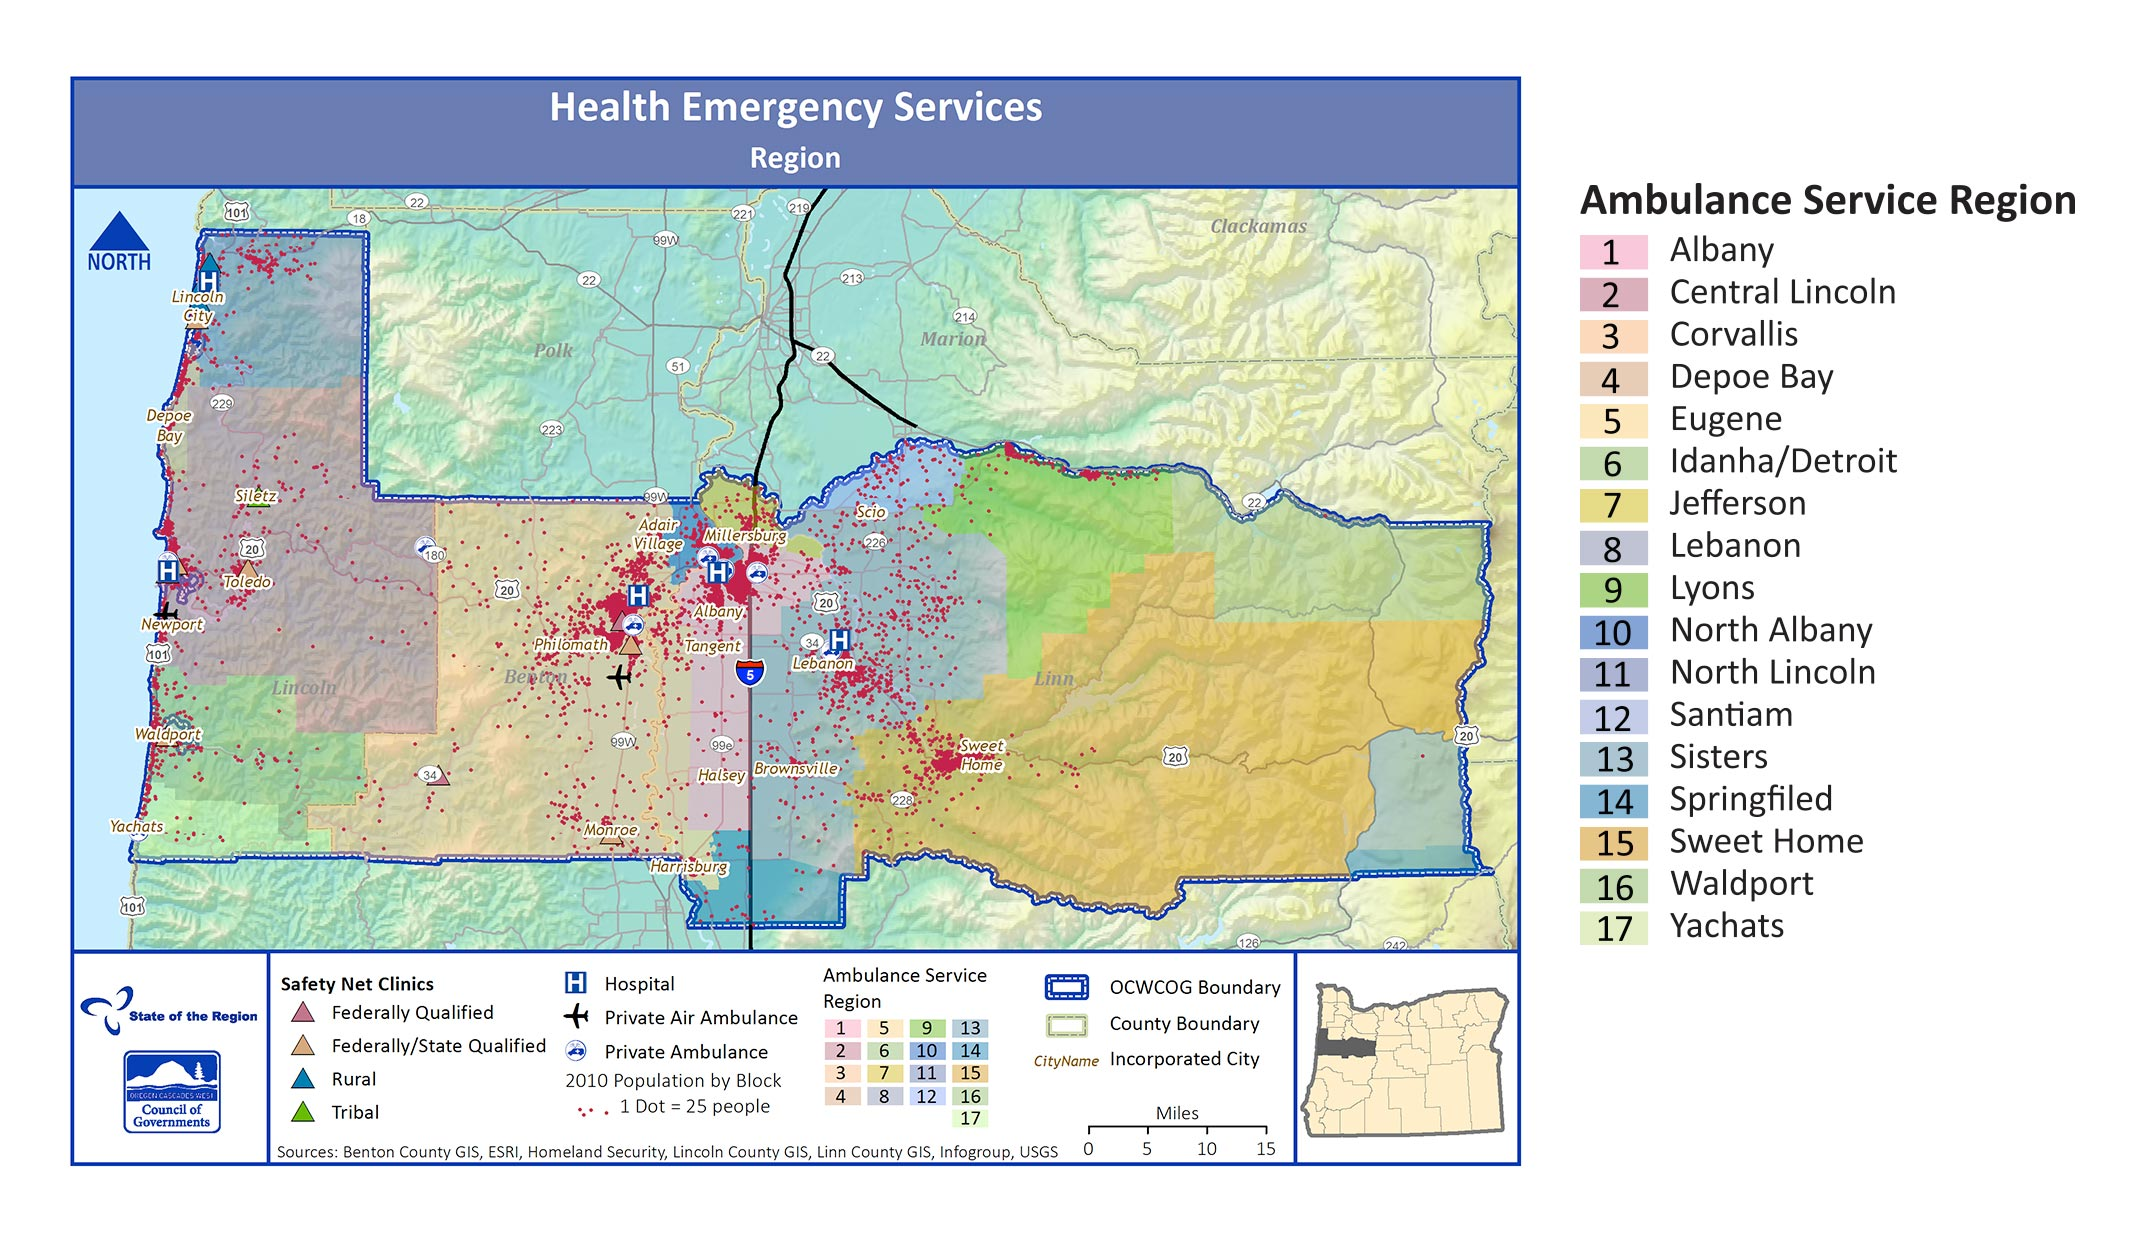 Map of Health Emergency Services in the Region